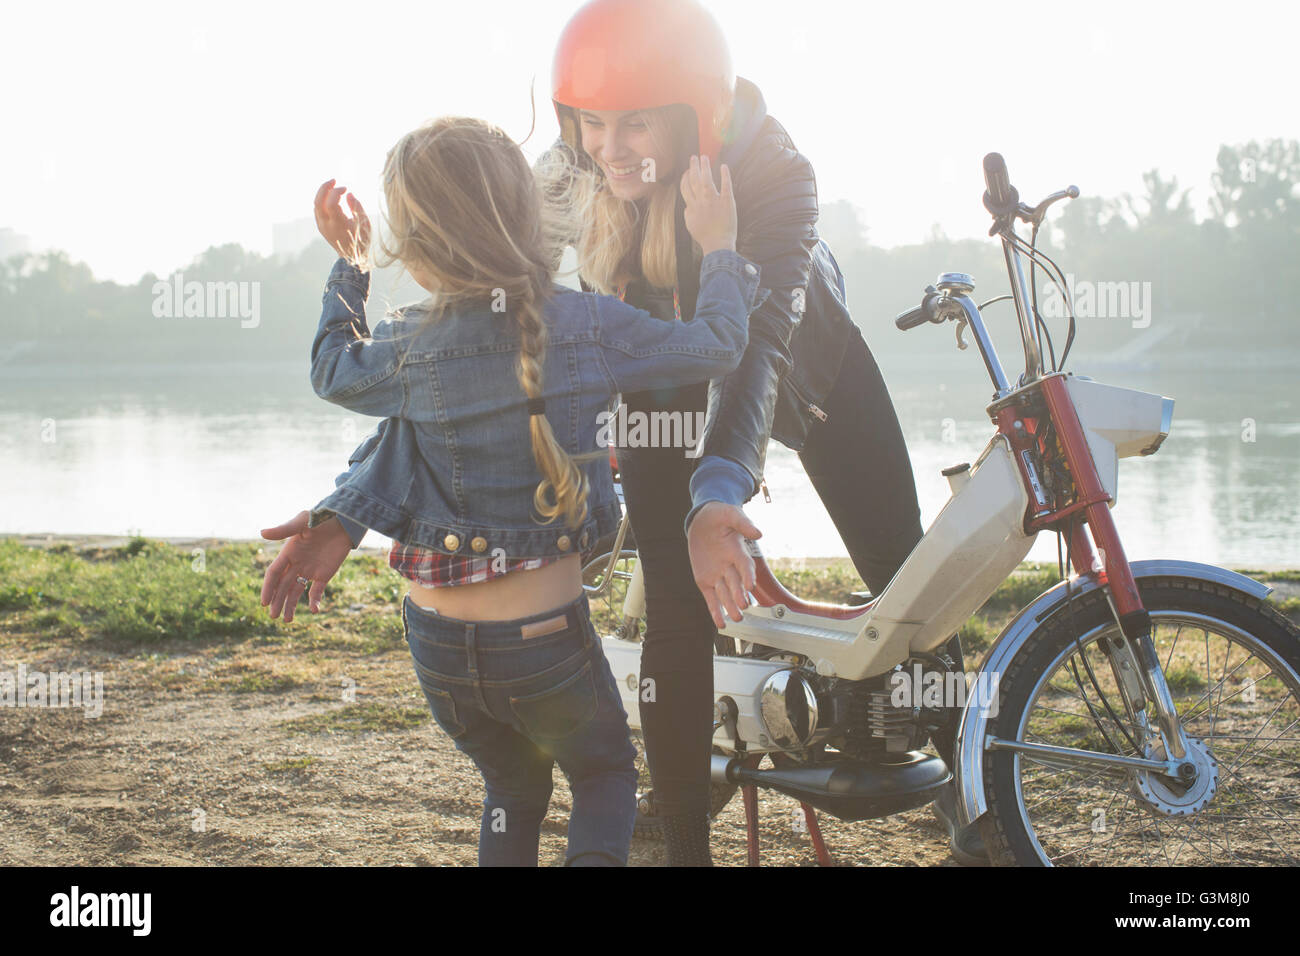 Young woman sitting on retro moped, daughter running towards her - Stock Image